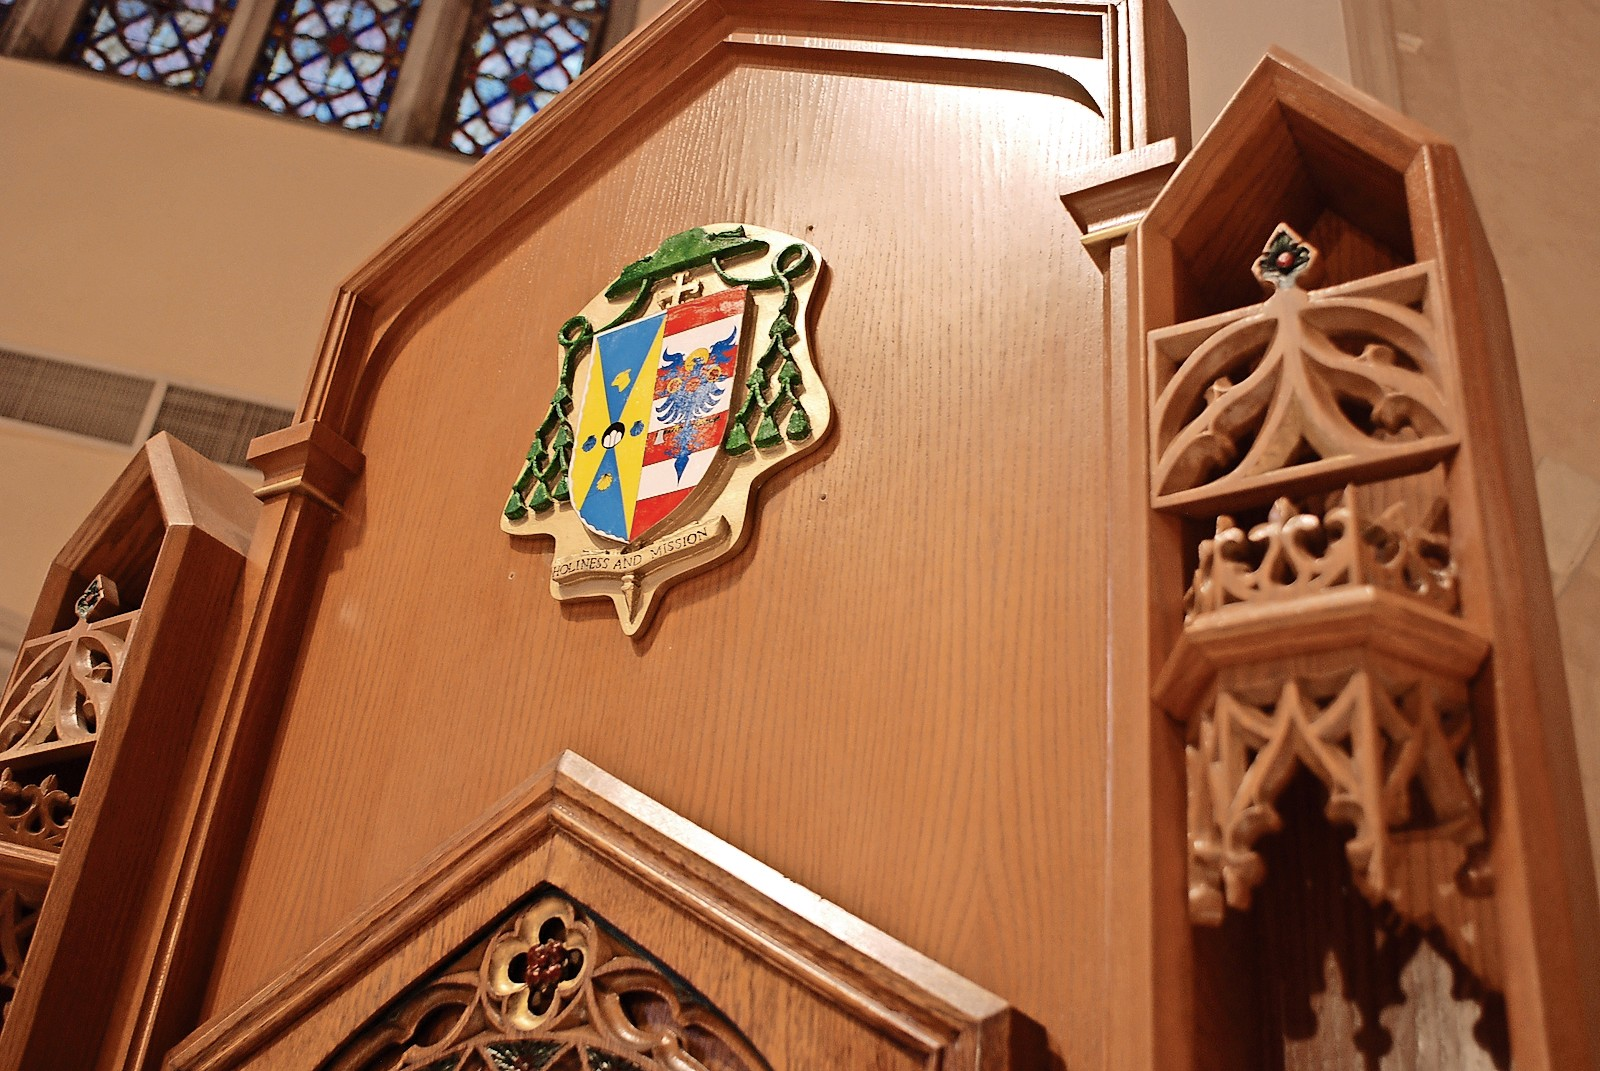 Bishops have coats of arms. Above is the coat of arms of Bishop John Barres, spiritual leader of the Diocese of Rockville Centre.